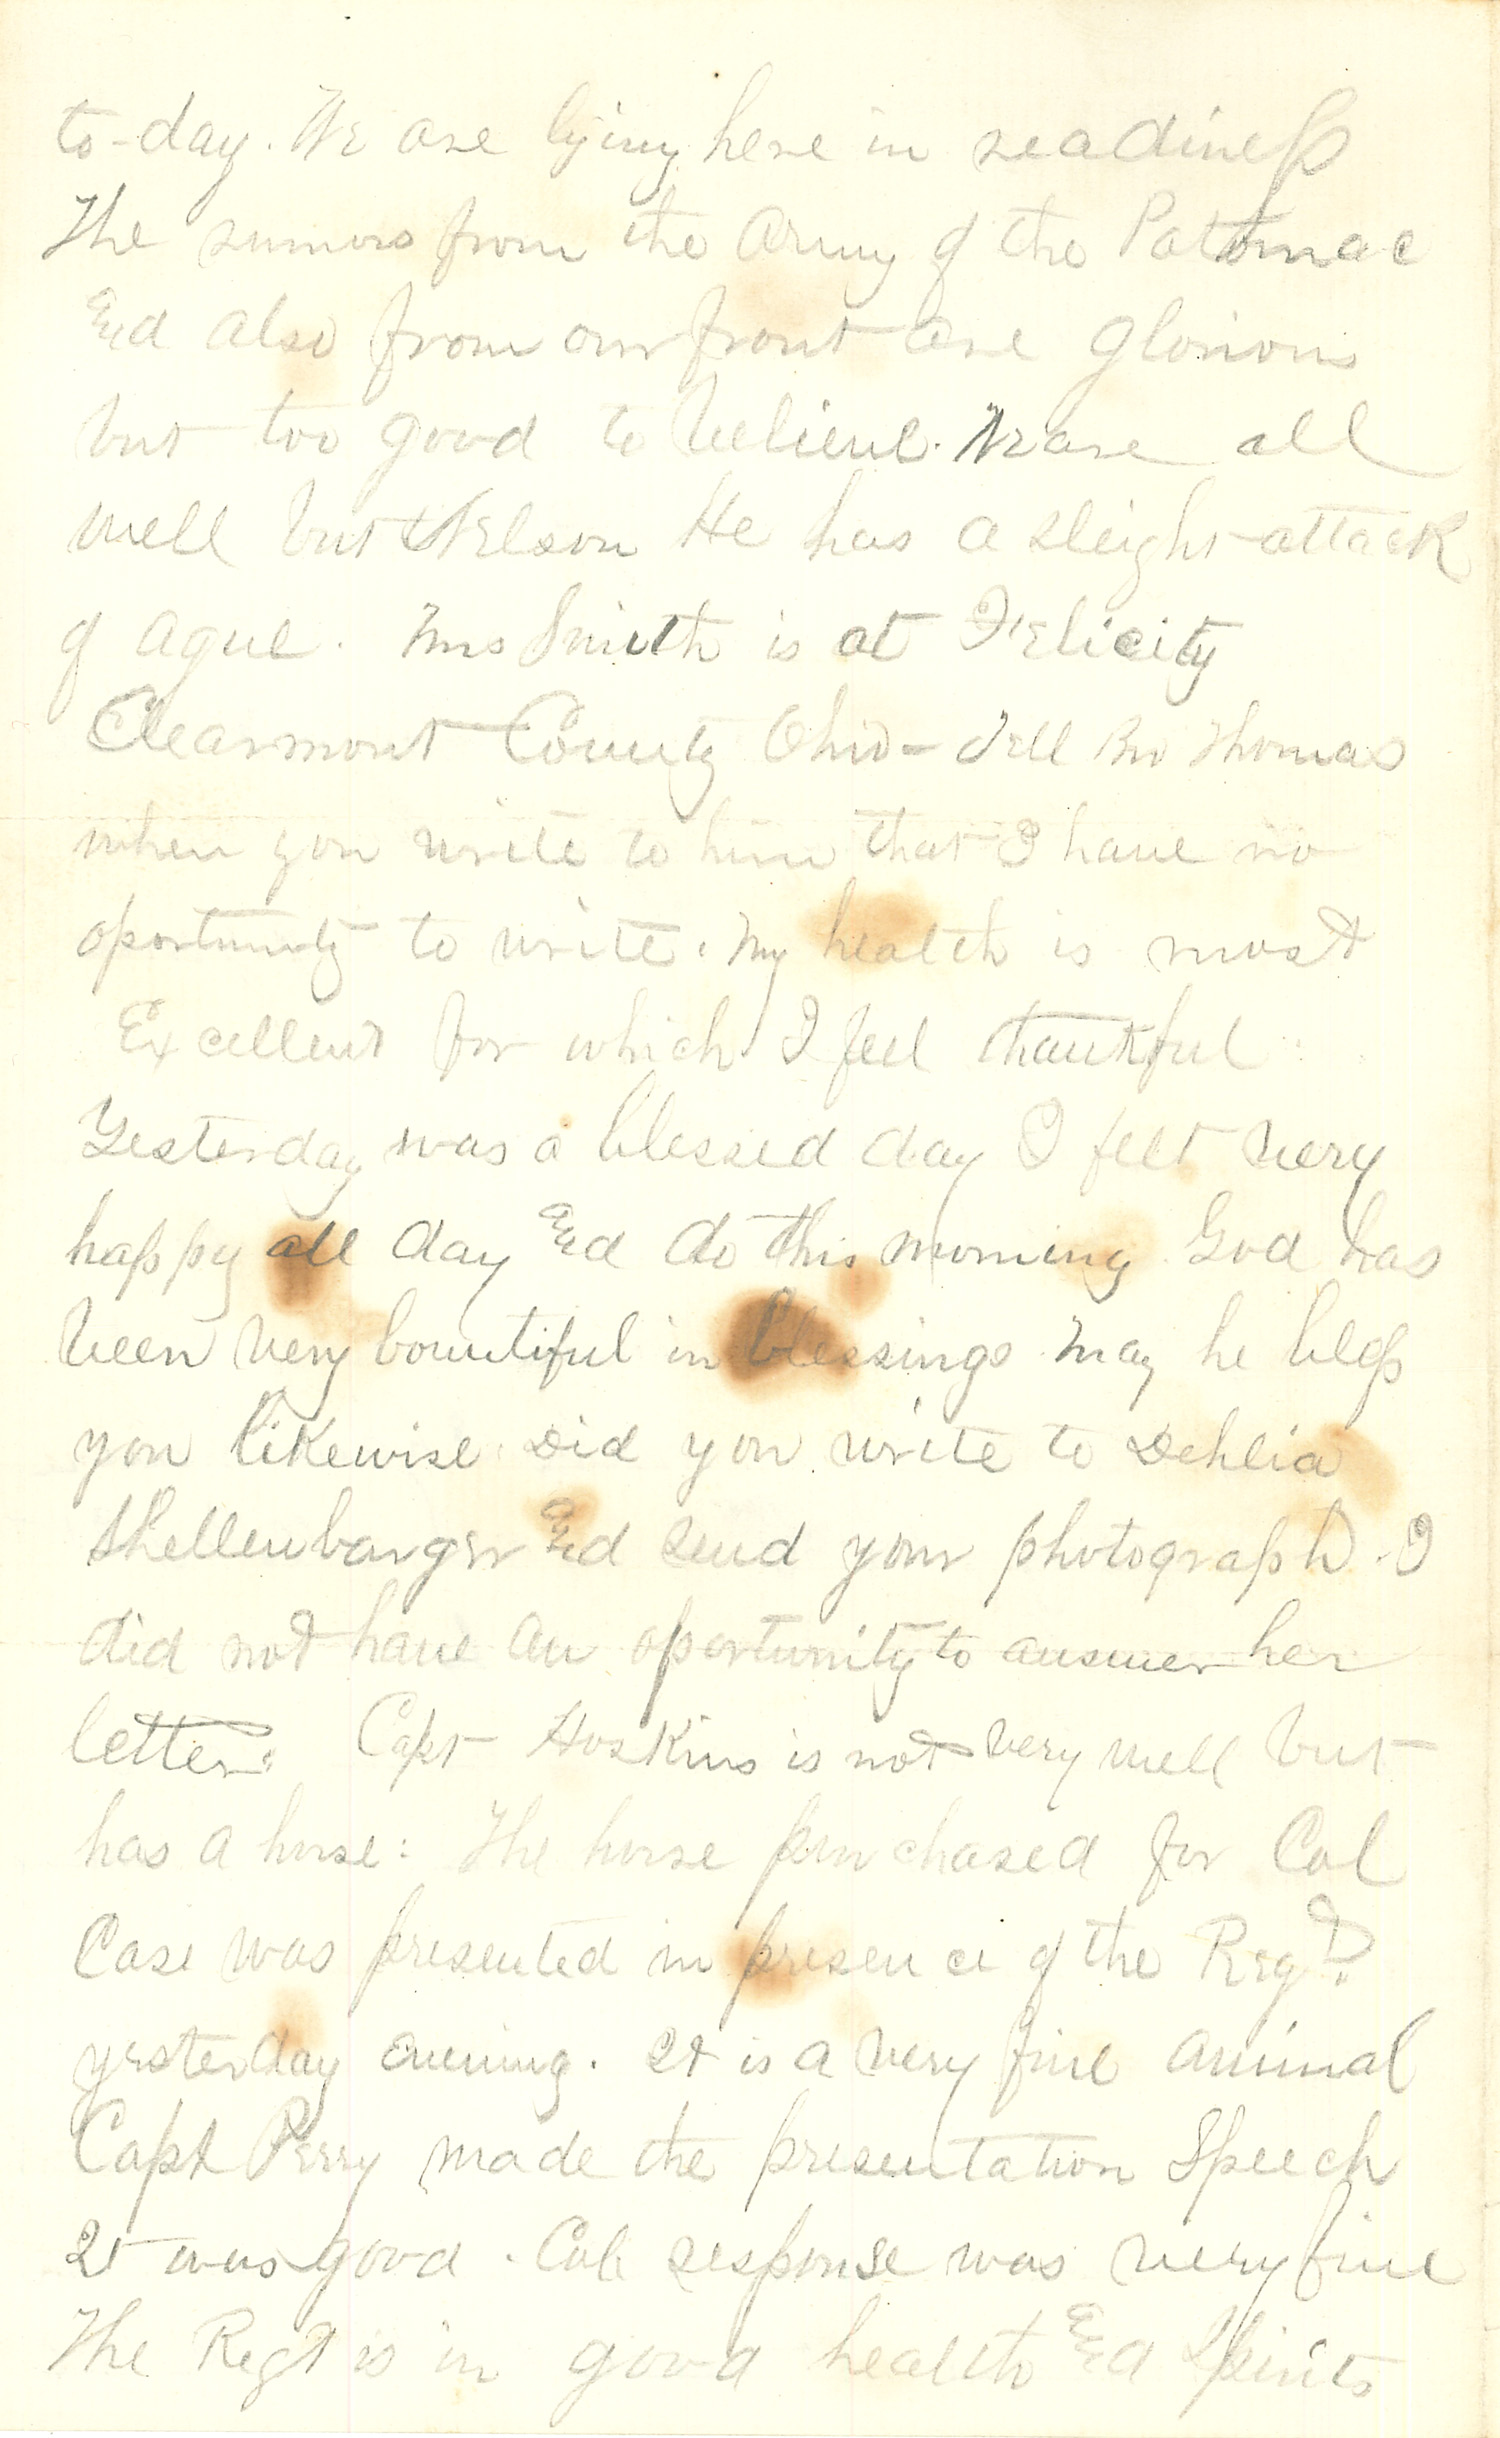 Joseph Culver Letter, May 9, 1864, Page 2